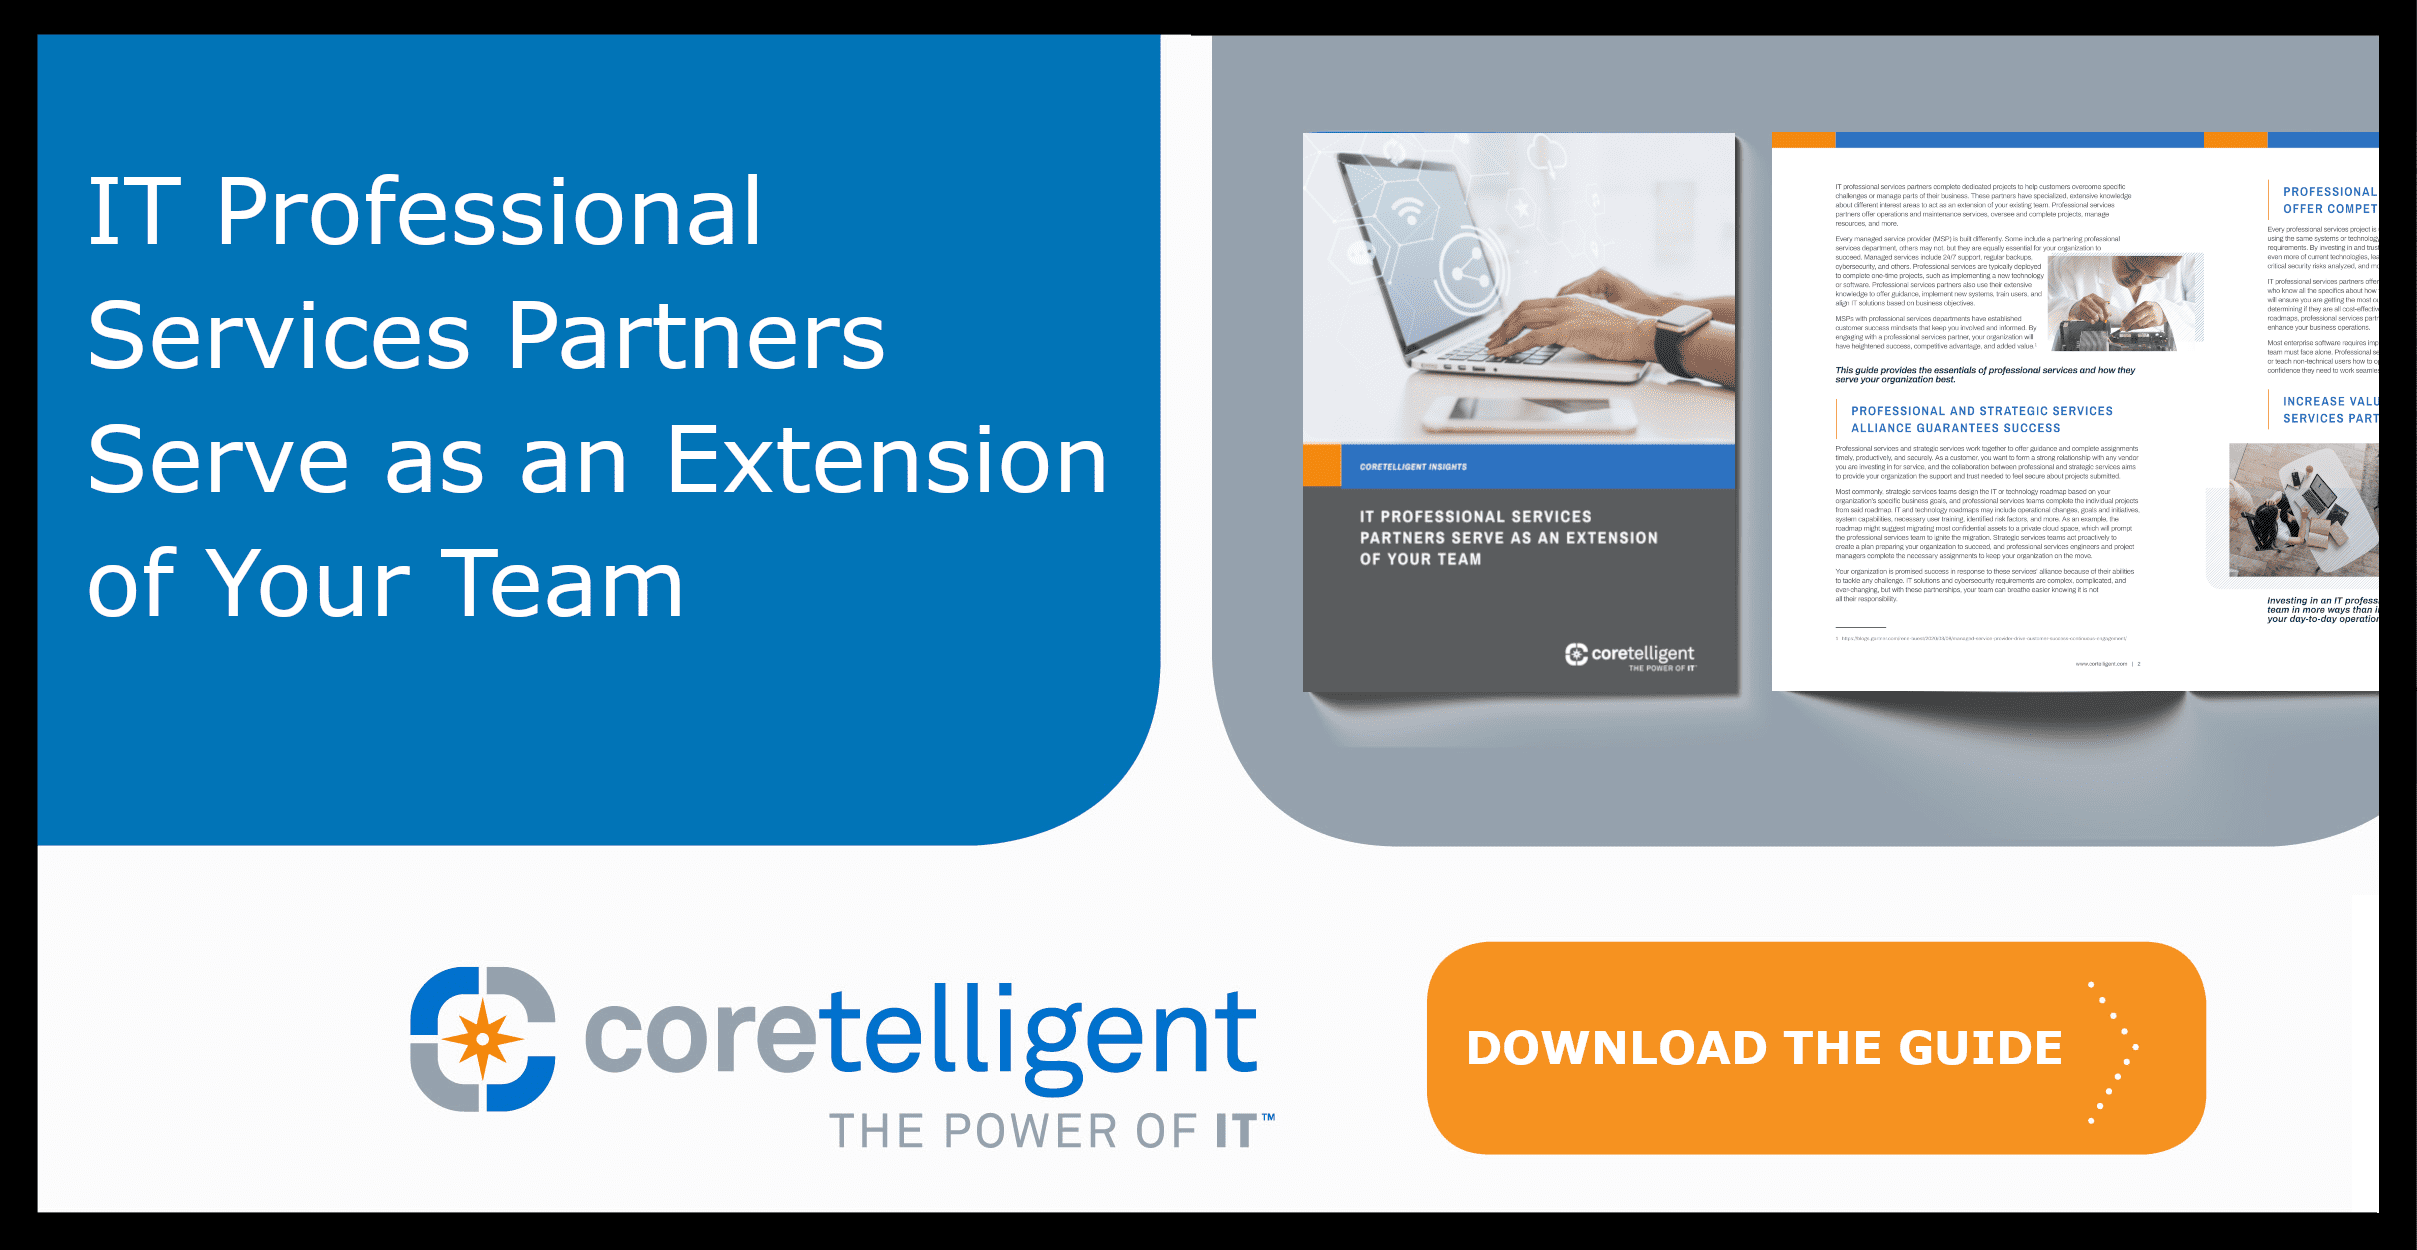 IT Professional Services Partners Serve as an Extension of Your Team